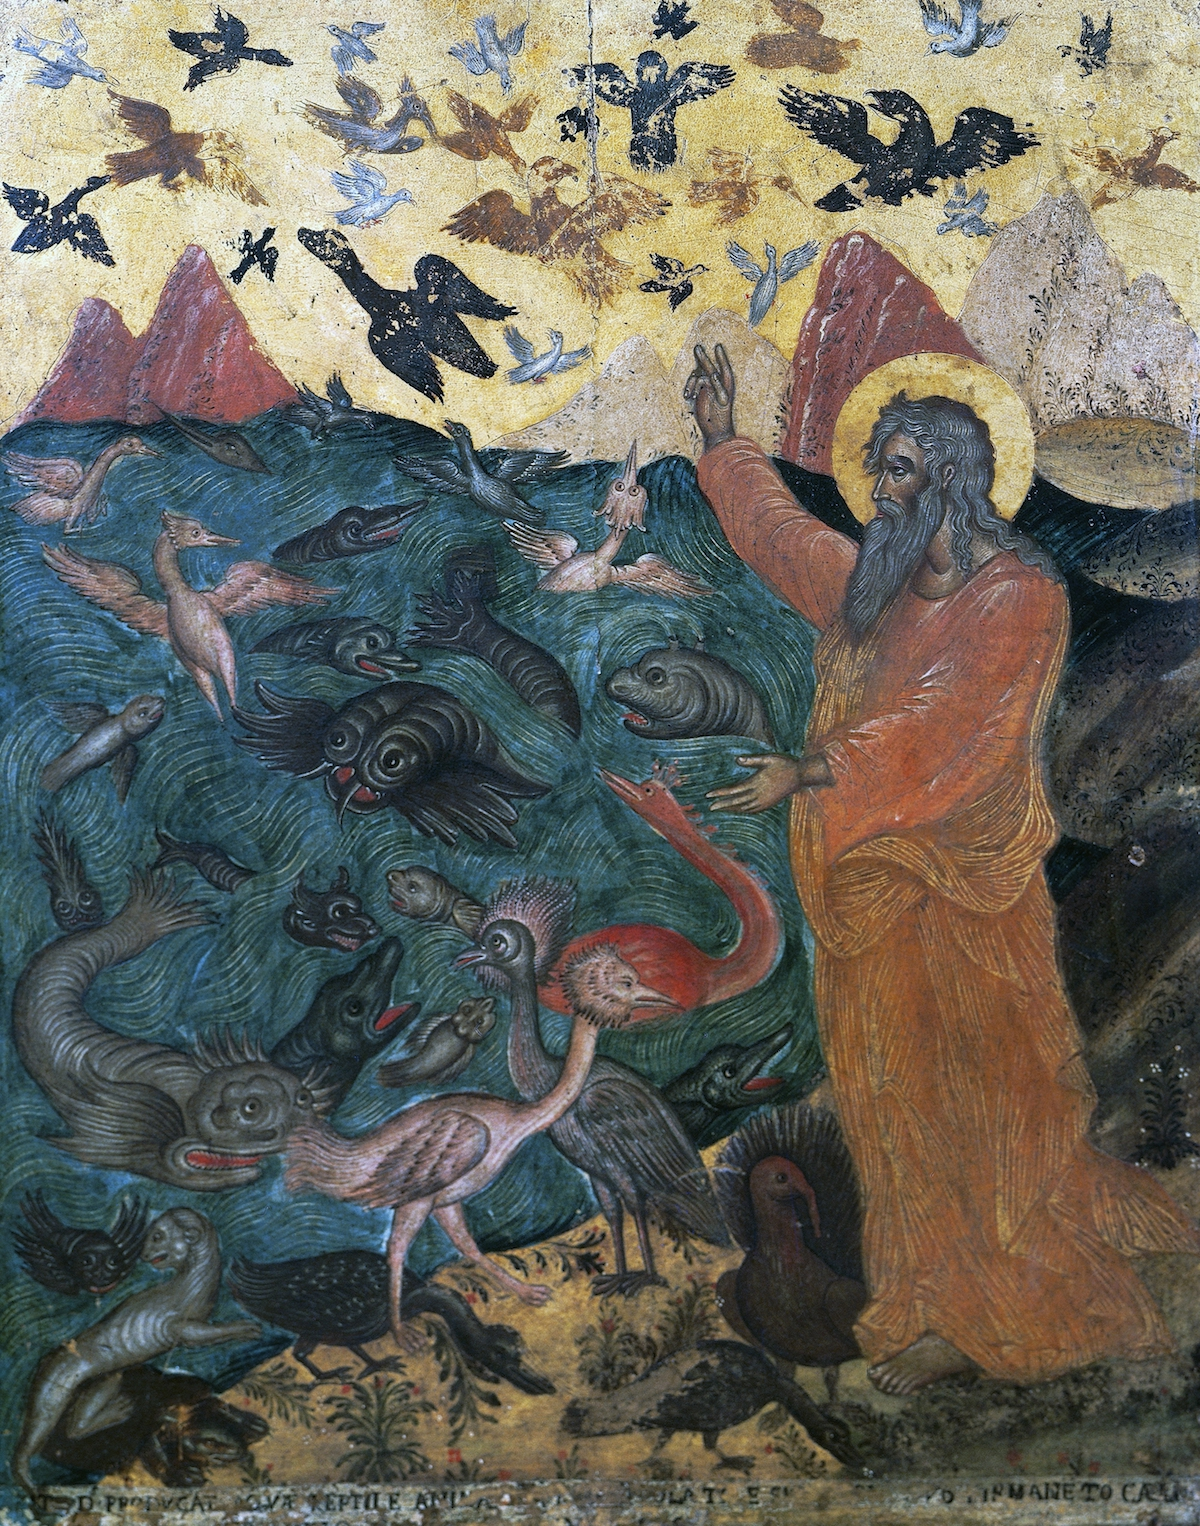 a very old painting with a bearded male figure on the right with a gold halo and reddish robe. He stands in front of a sea filled with elaborately drawn fish and a golden sky full of birds